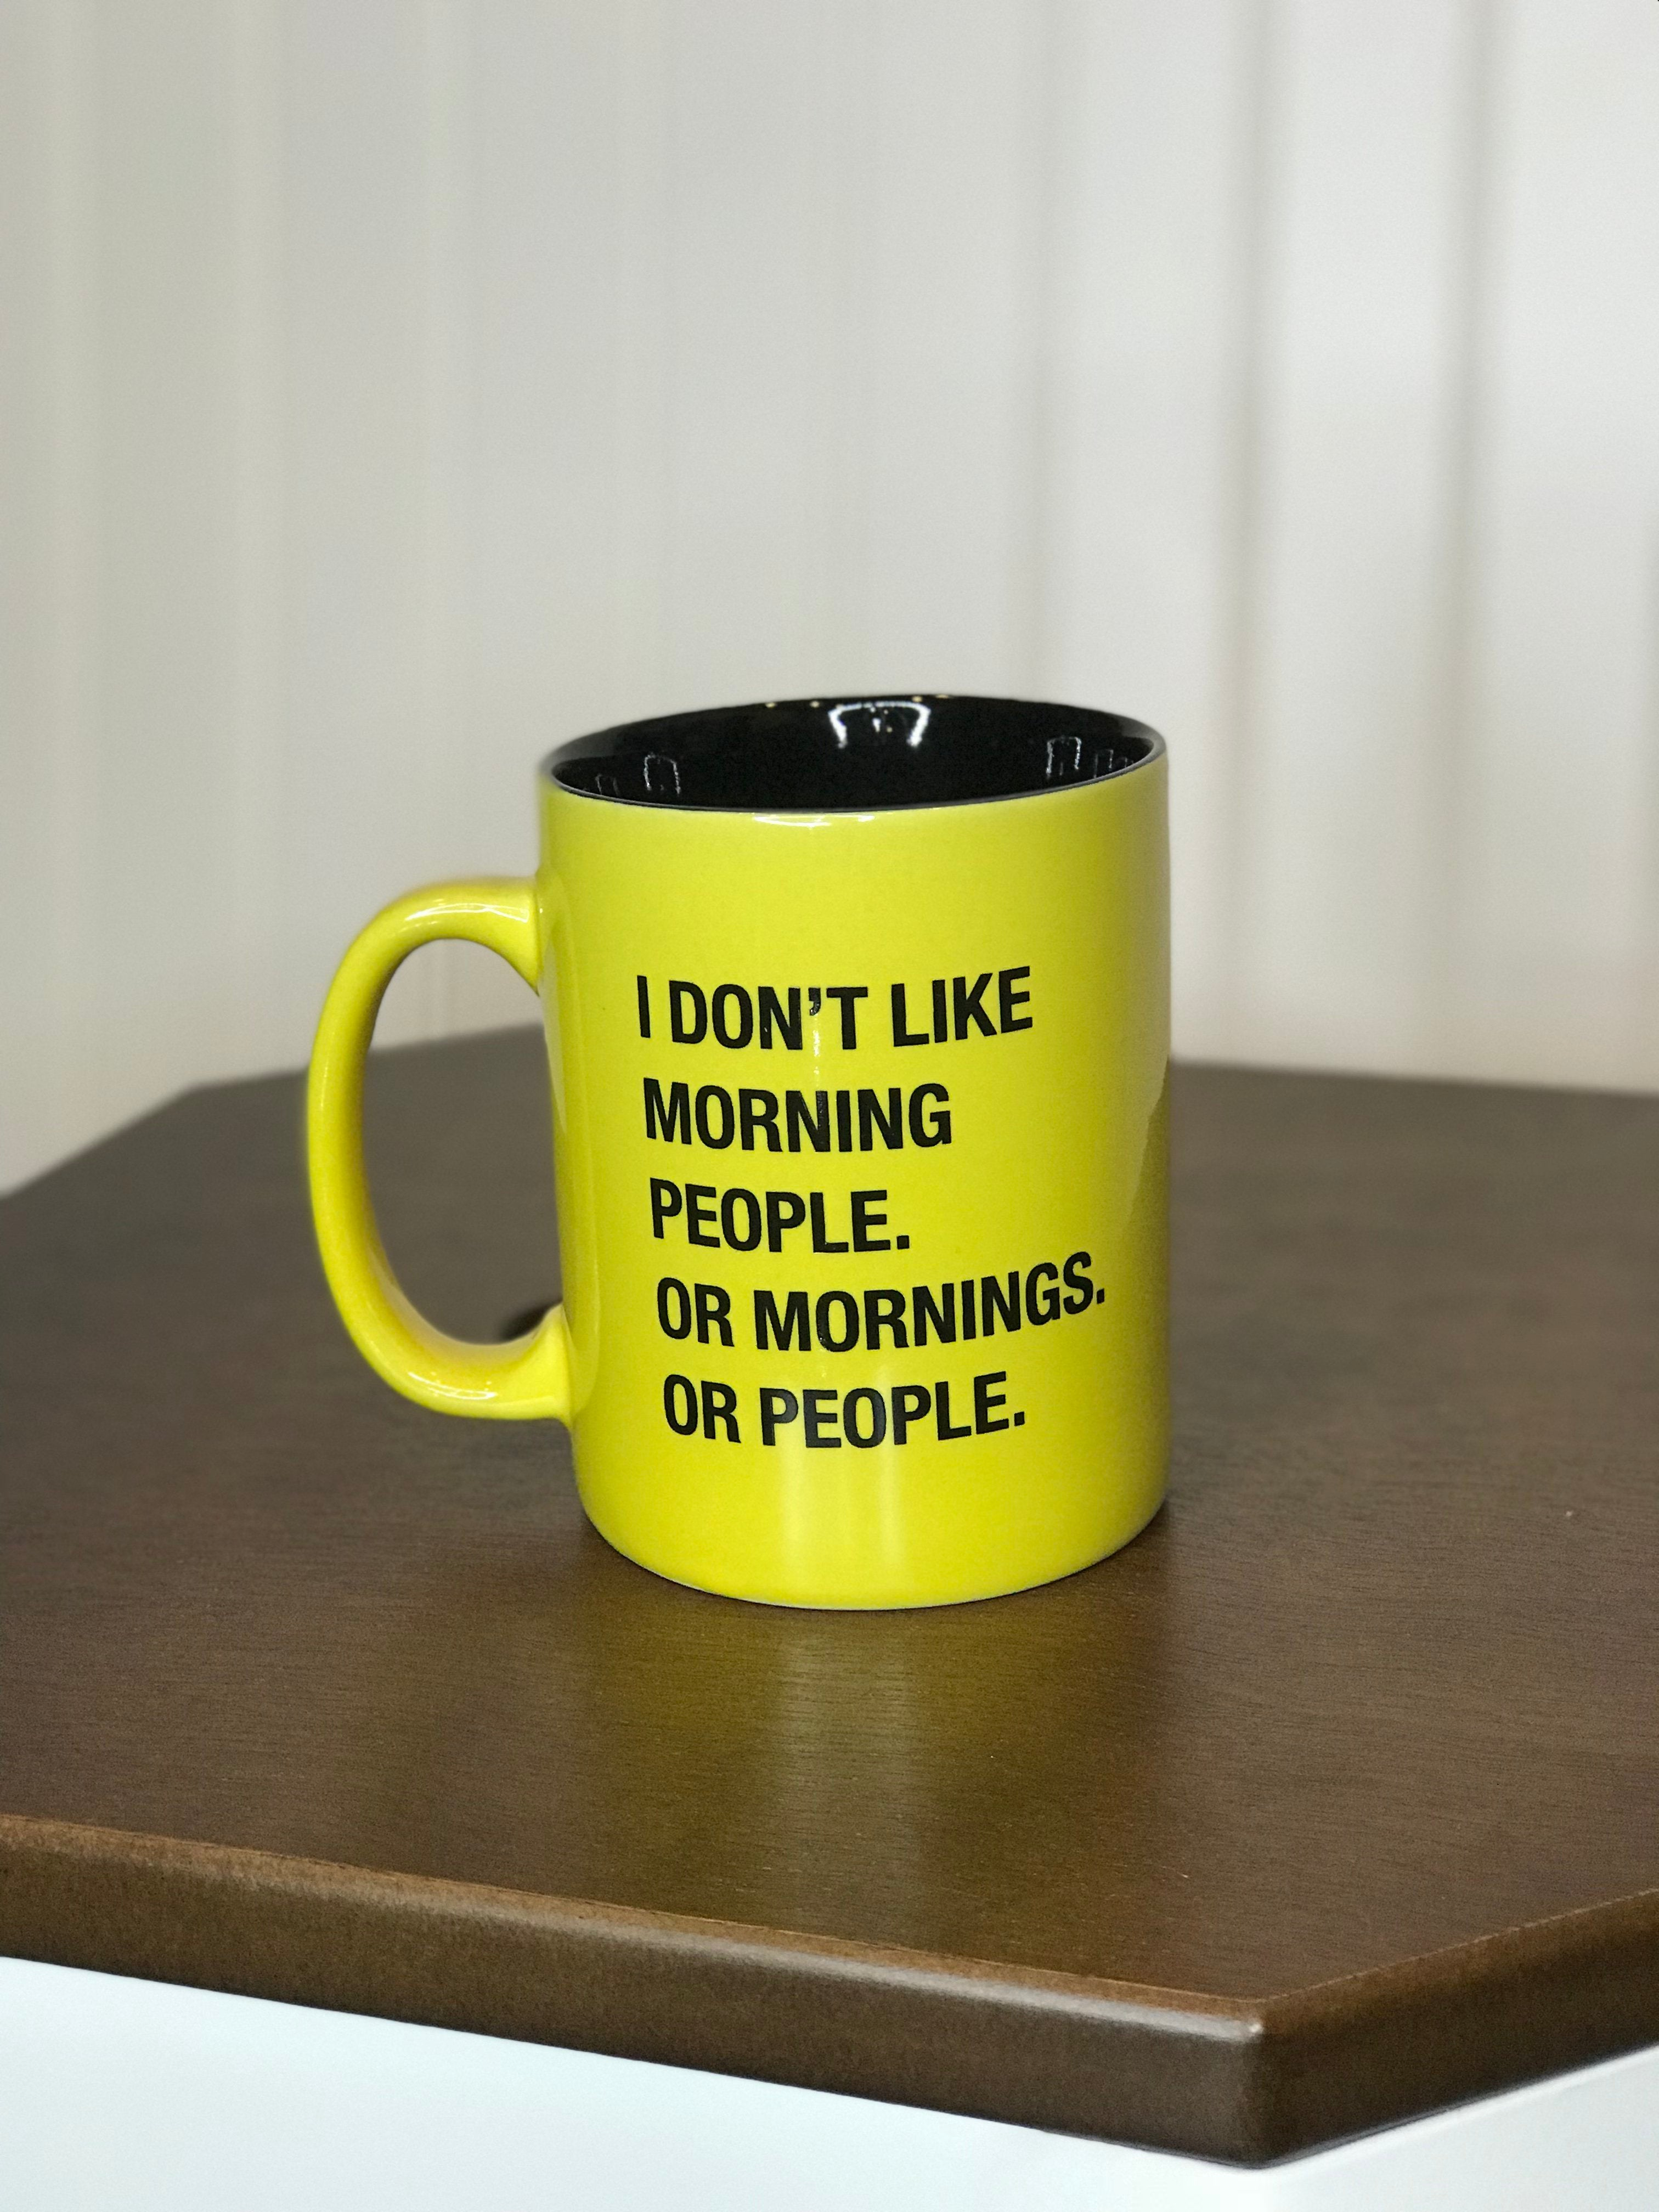 Funny coffee mug yellow mug black font I dont like Morning people or mornings or people funny mugs